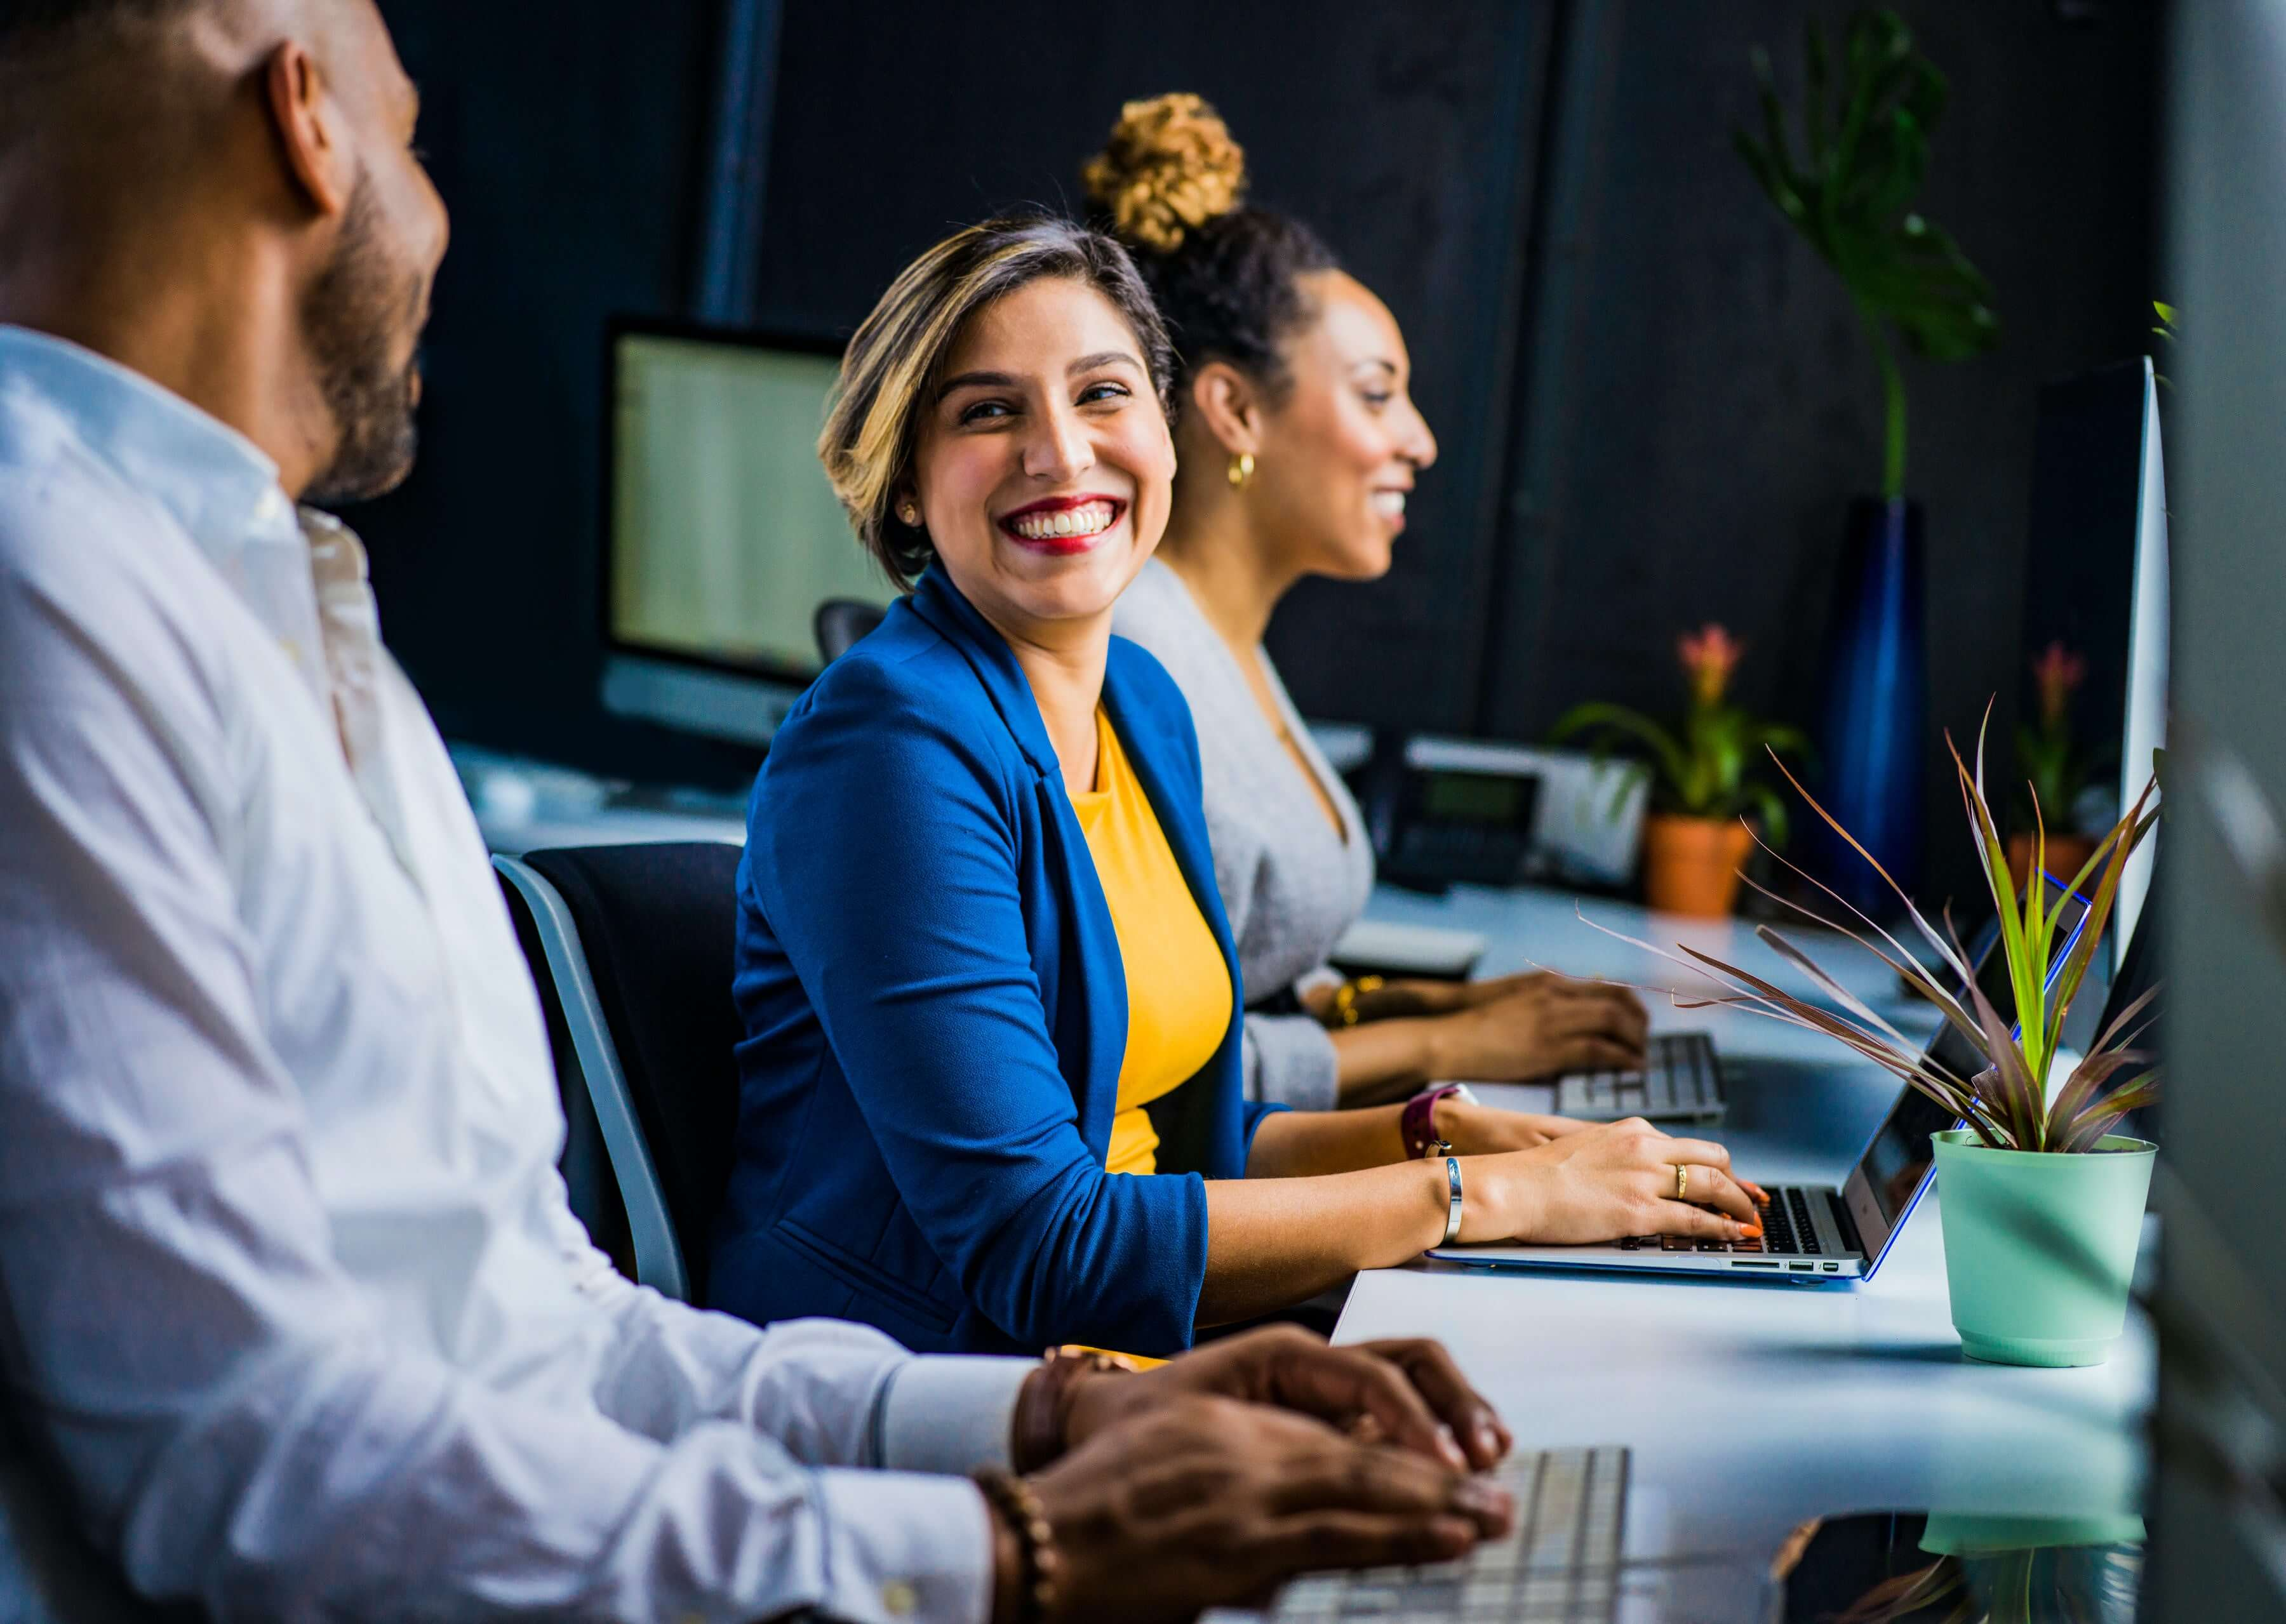 Woman in blue vest smiling and sitting between her colleagues